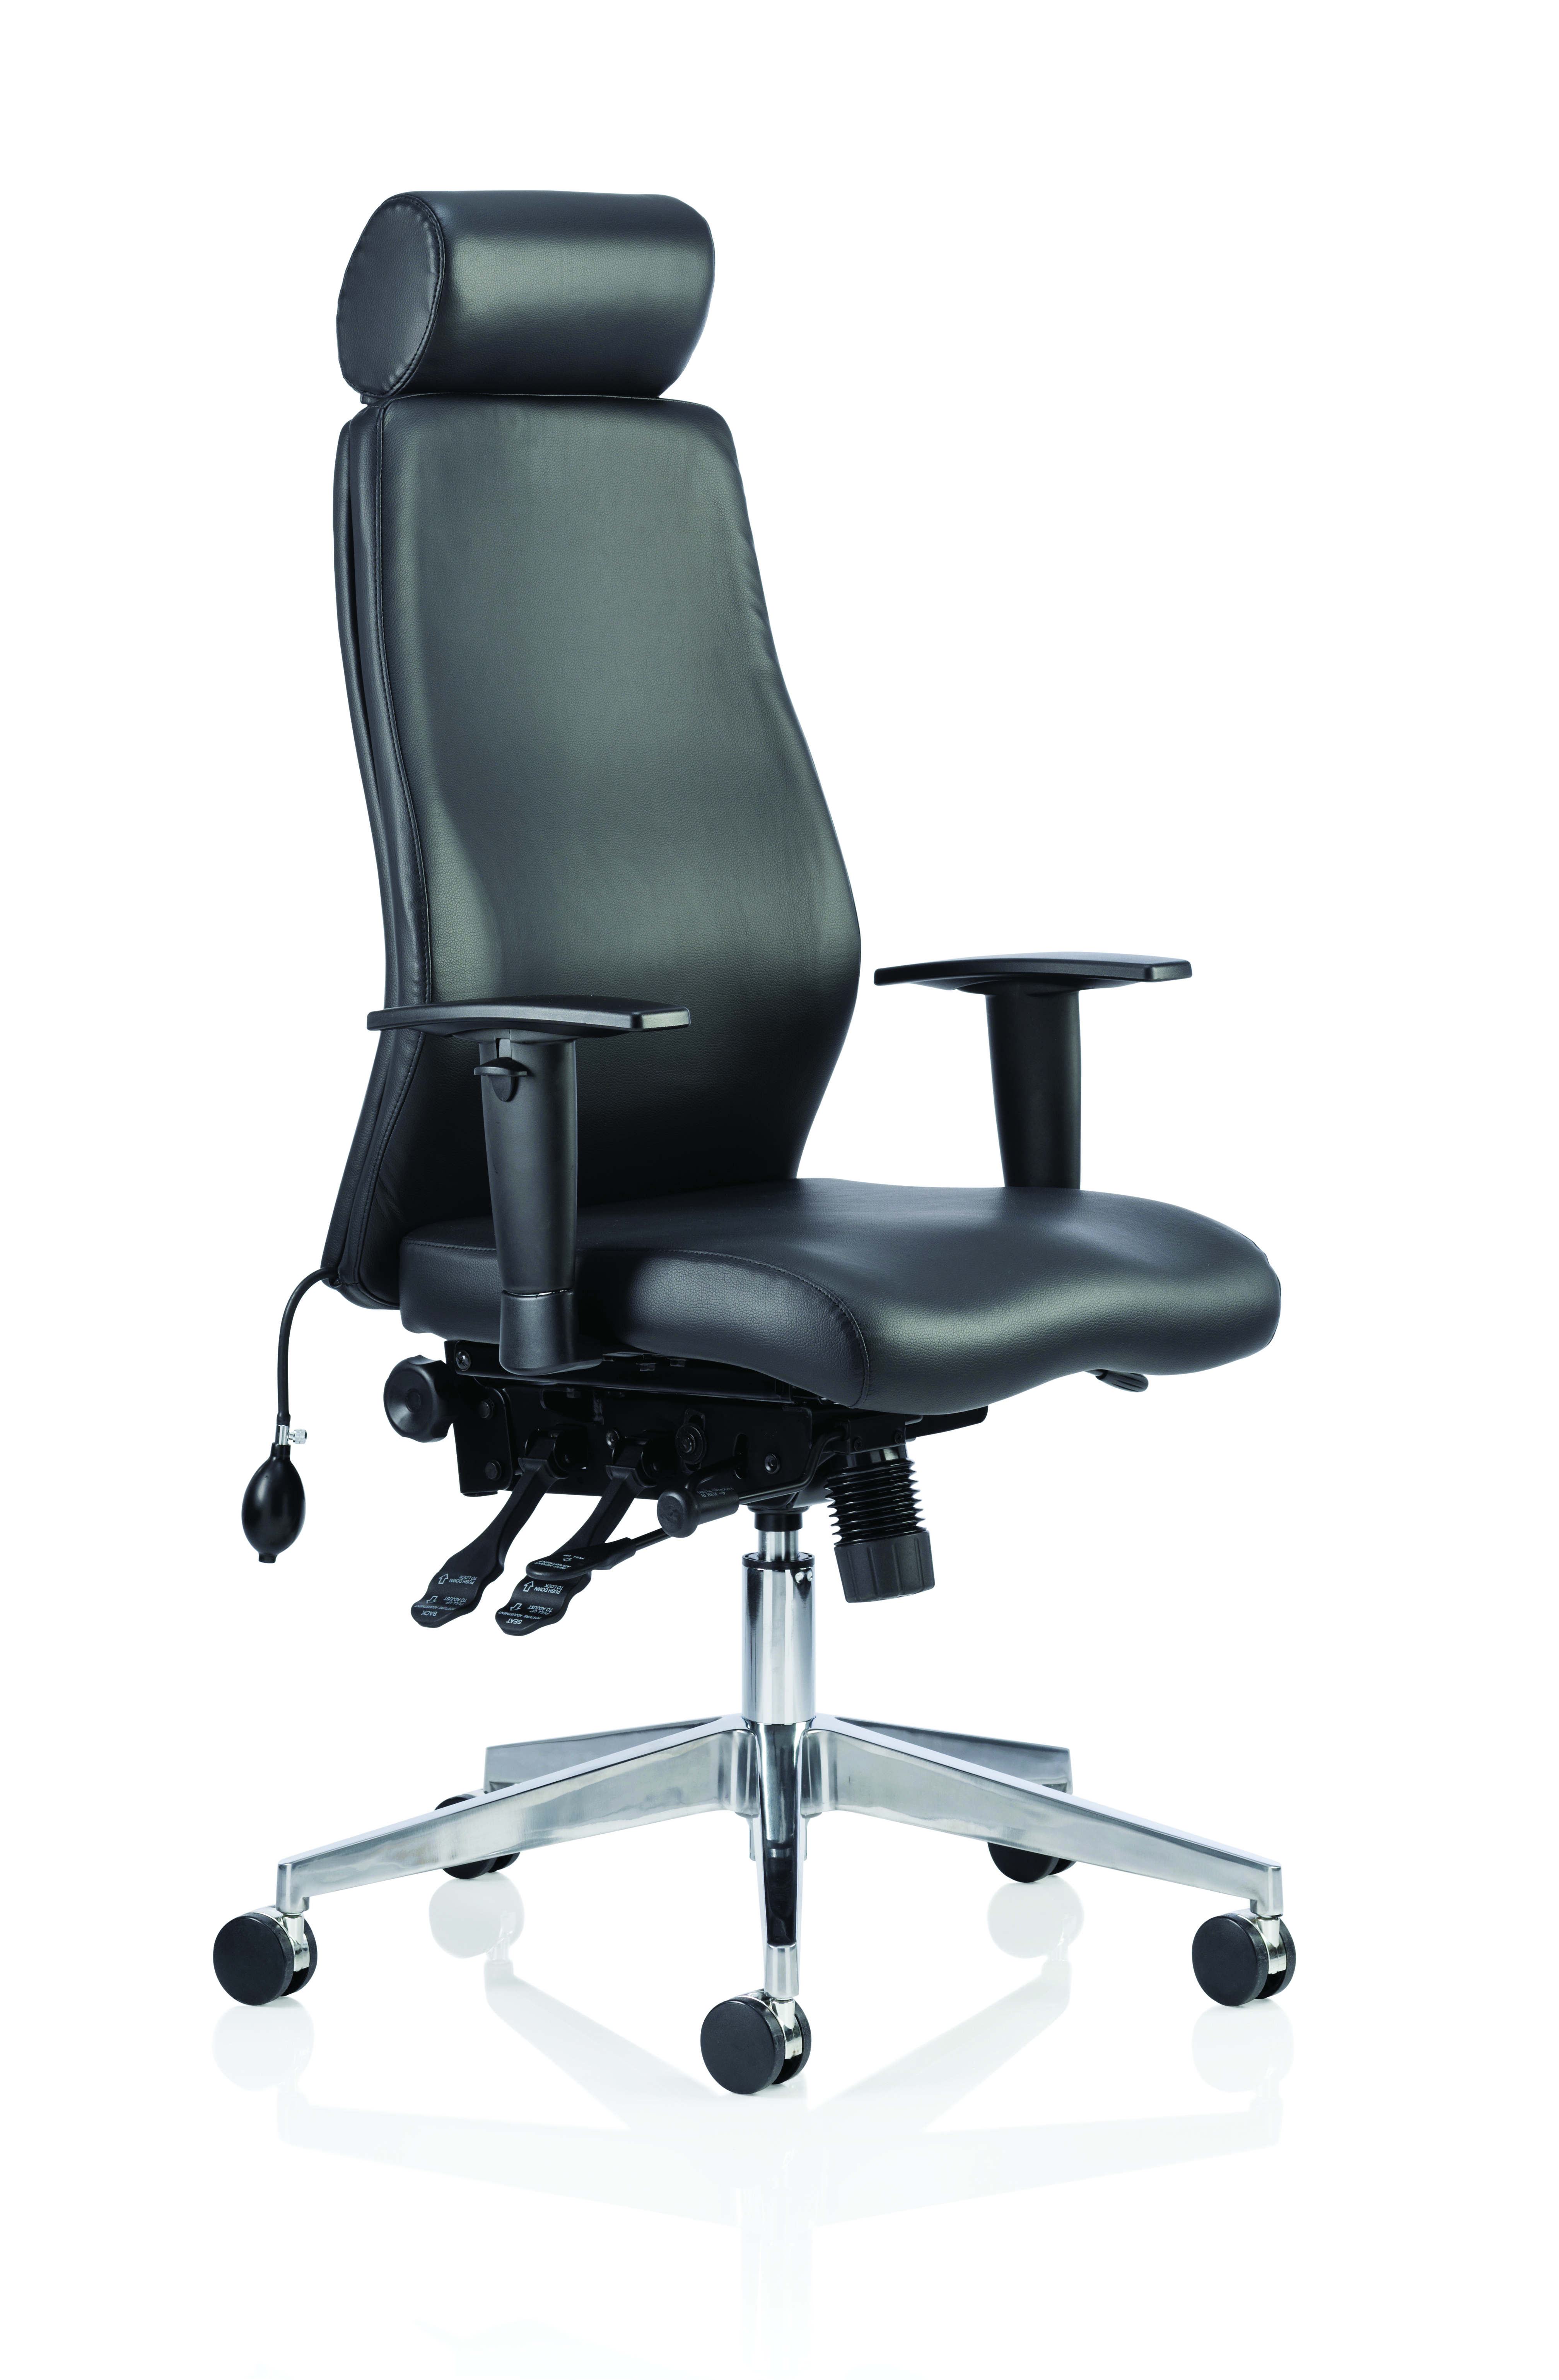 Desk Chairs Onyx Black Soft Bonded Leather With Headrest With Arms OP000098